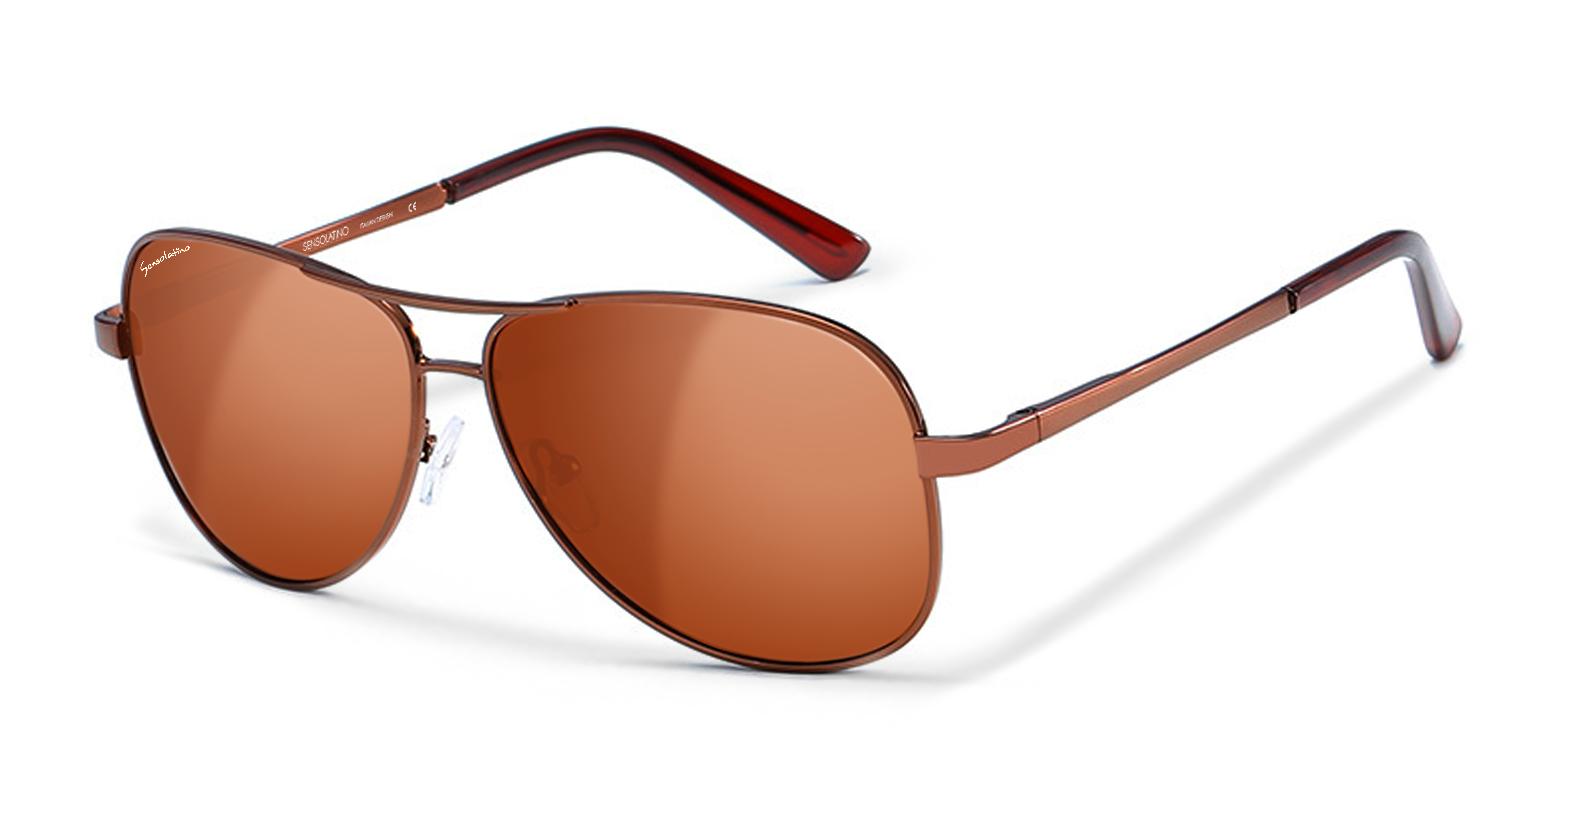 47a821ca4c UNITED ARAB EMIRATES WITH BROWN POLARIZED LENSES